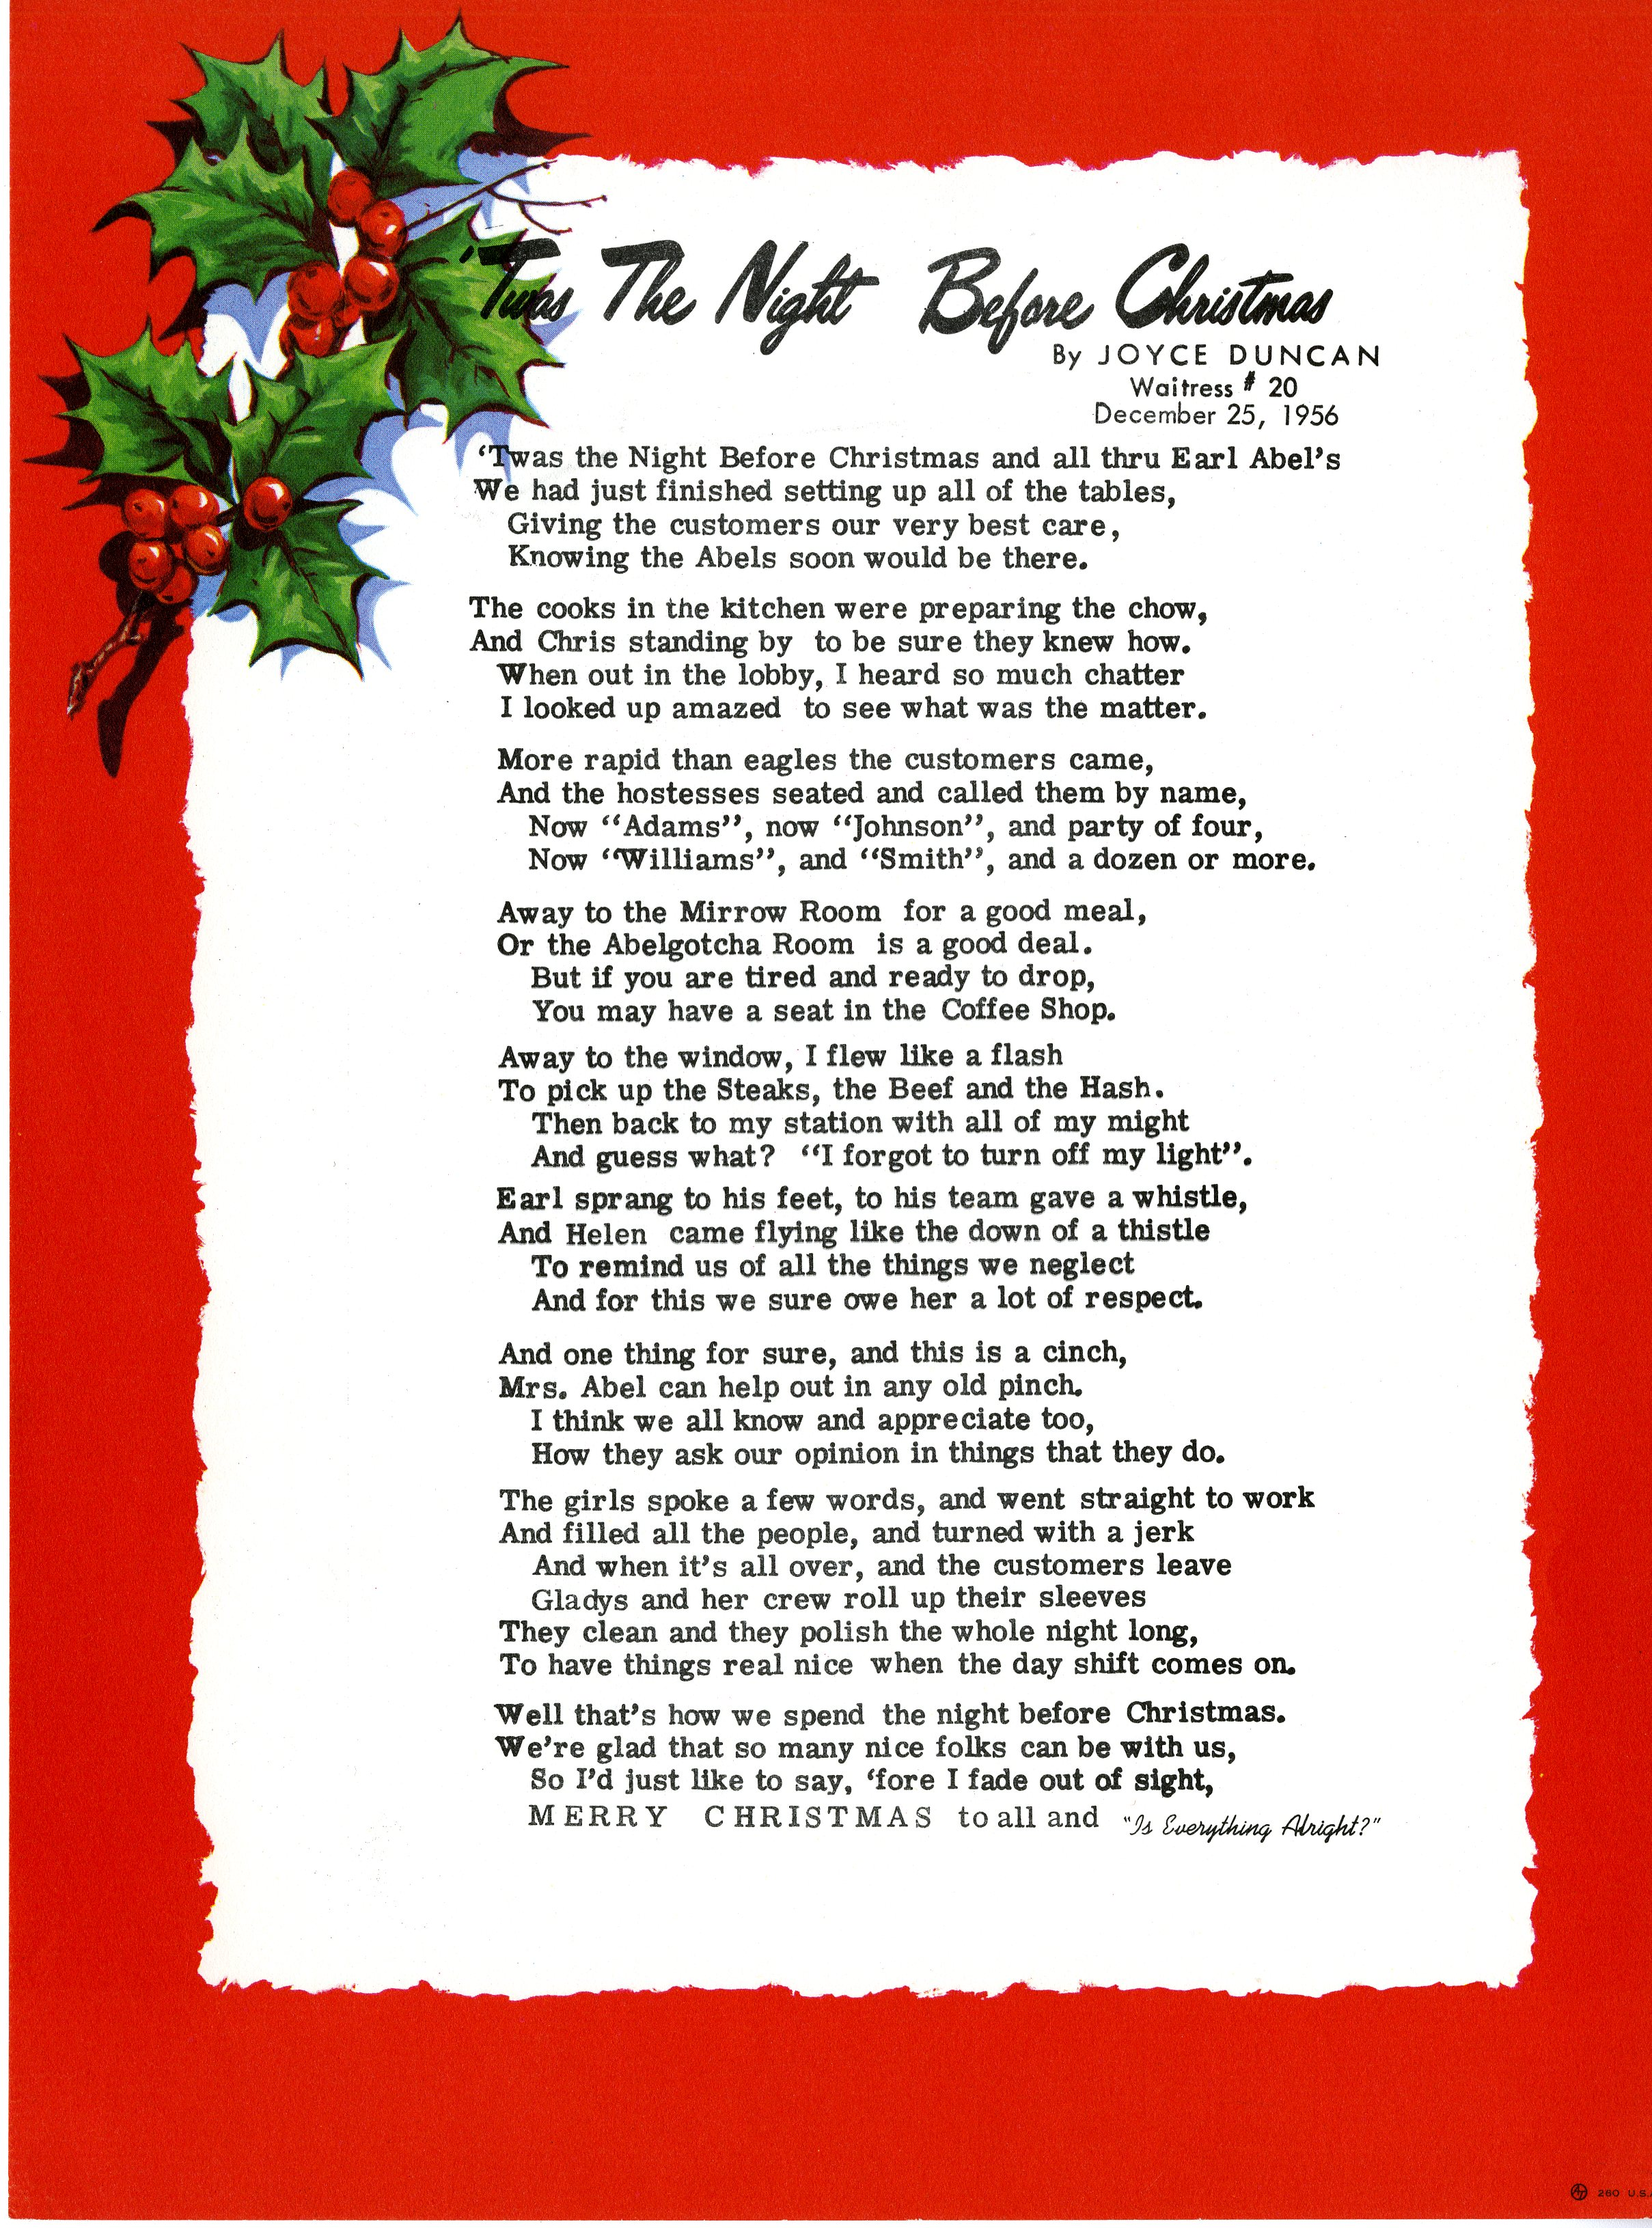 Bewitching image intended for twas the night before christmas printable